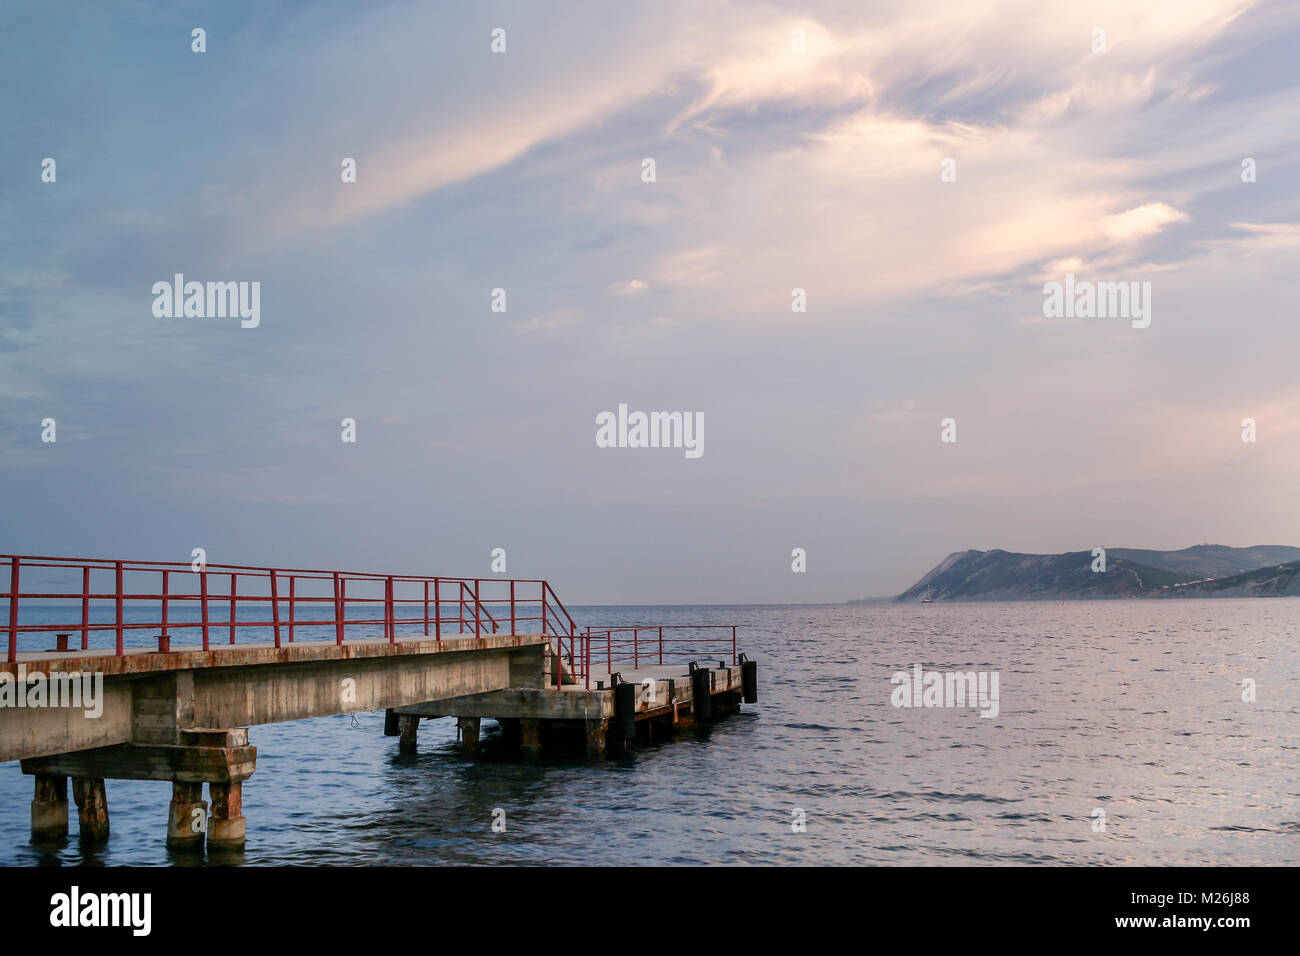 Close-up of the shipping pier on the sea at dawn. - Stock Image